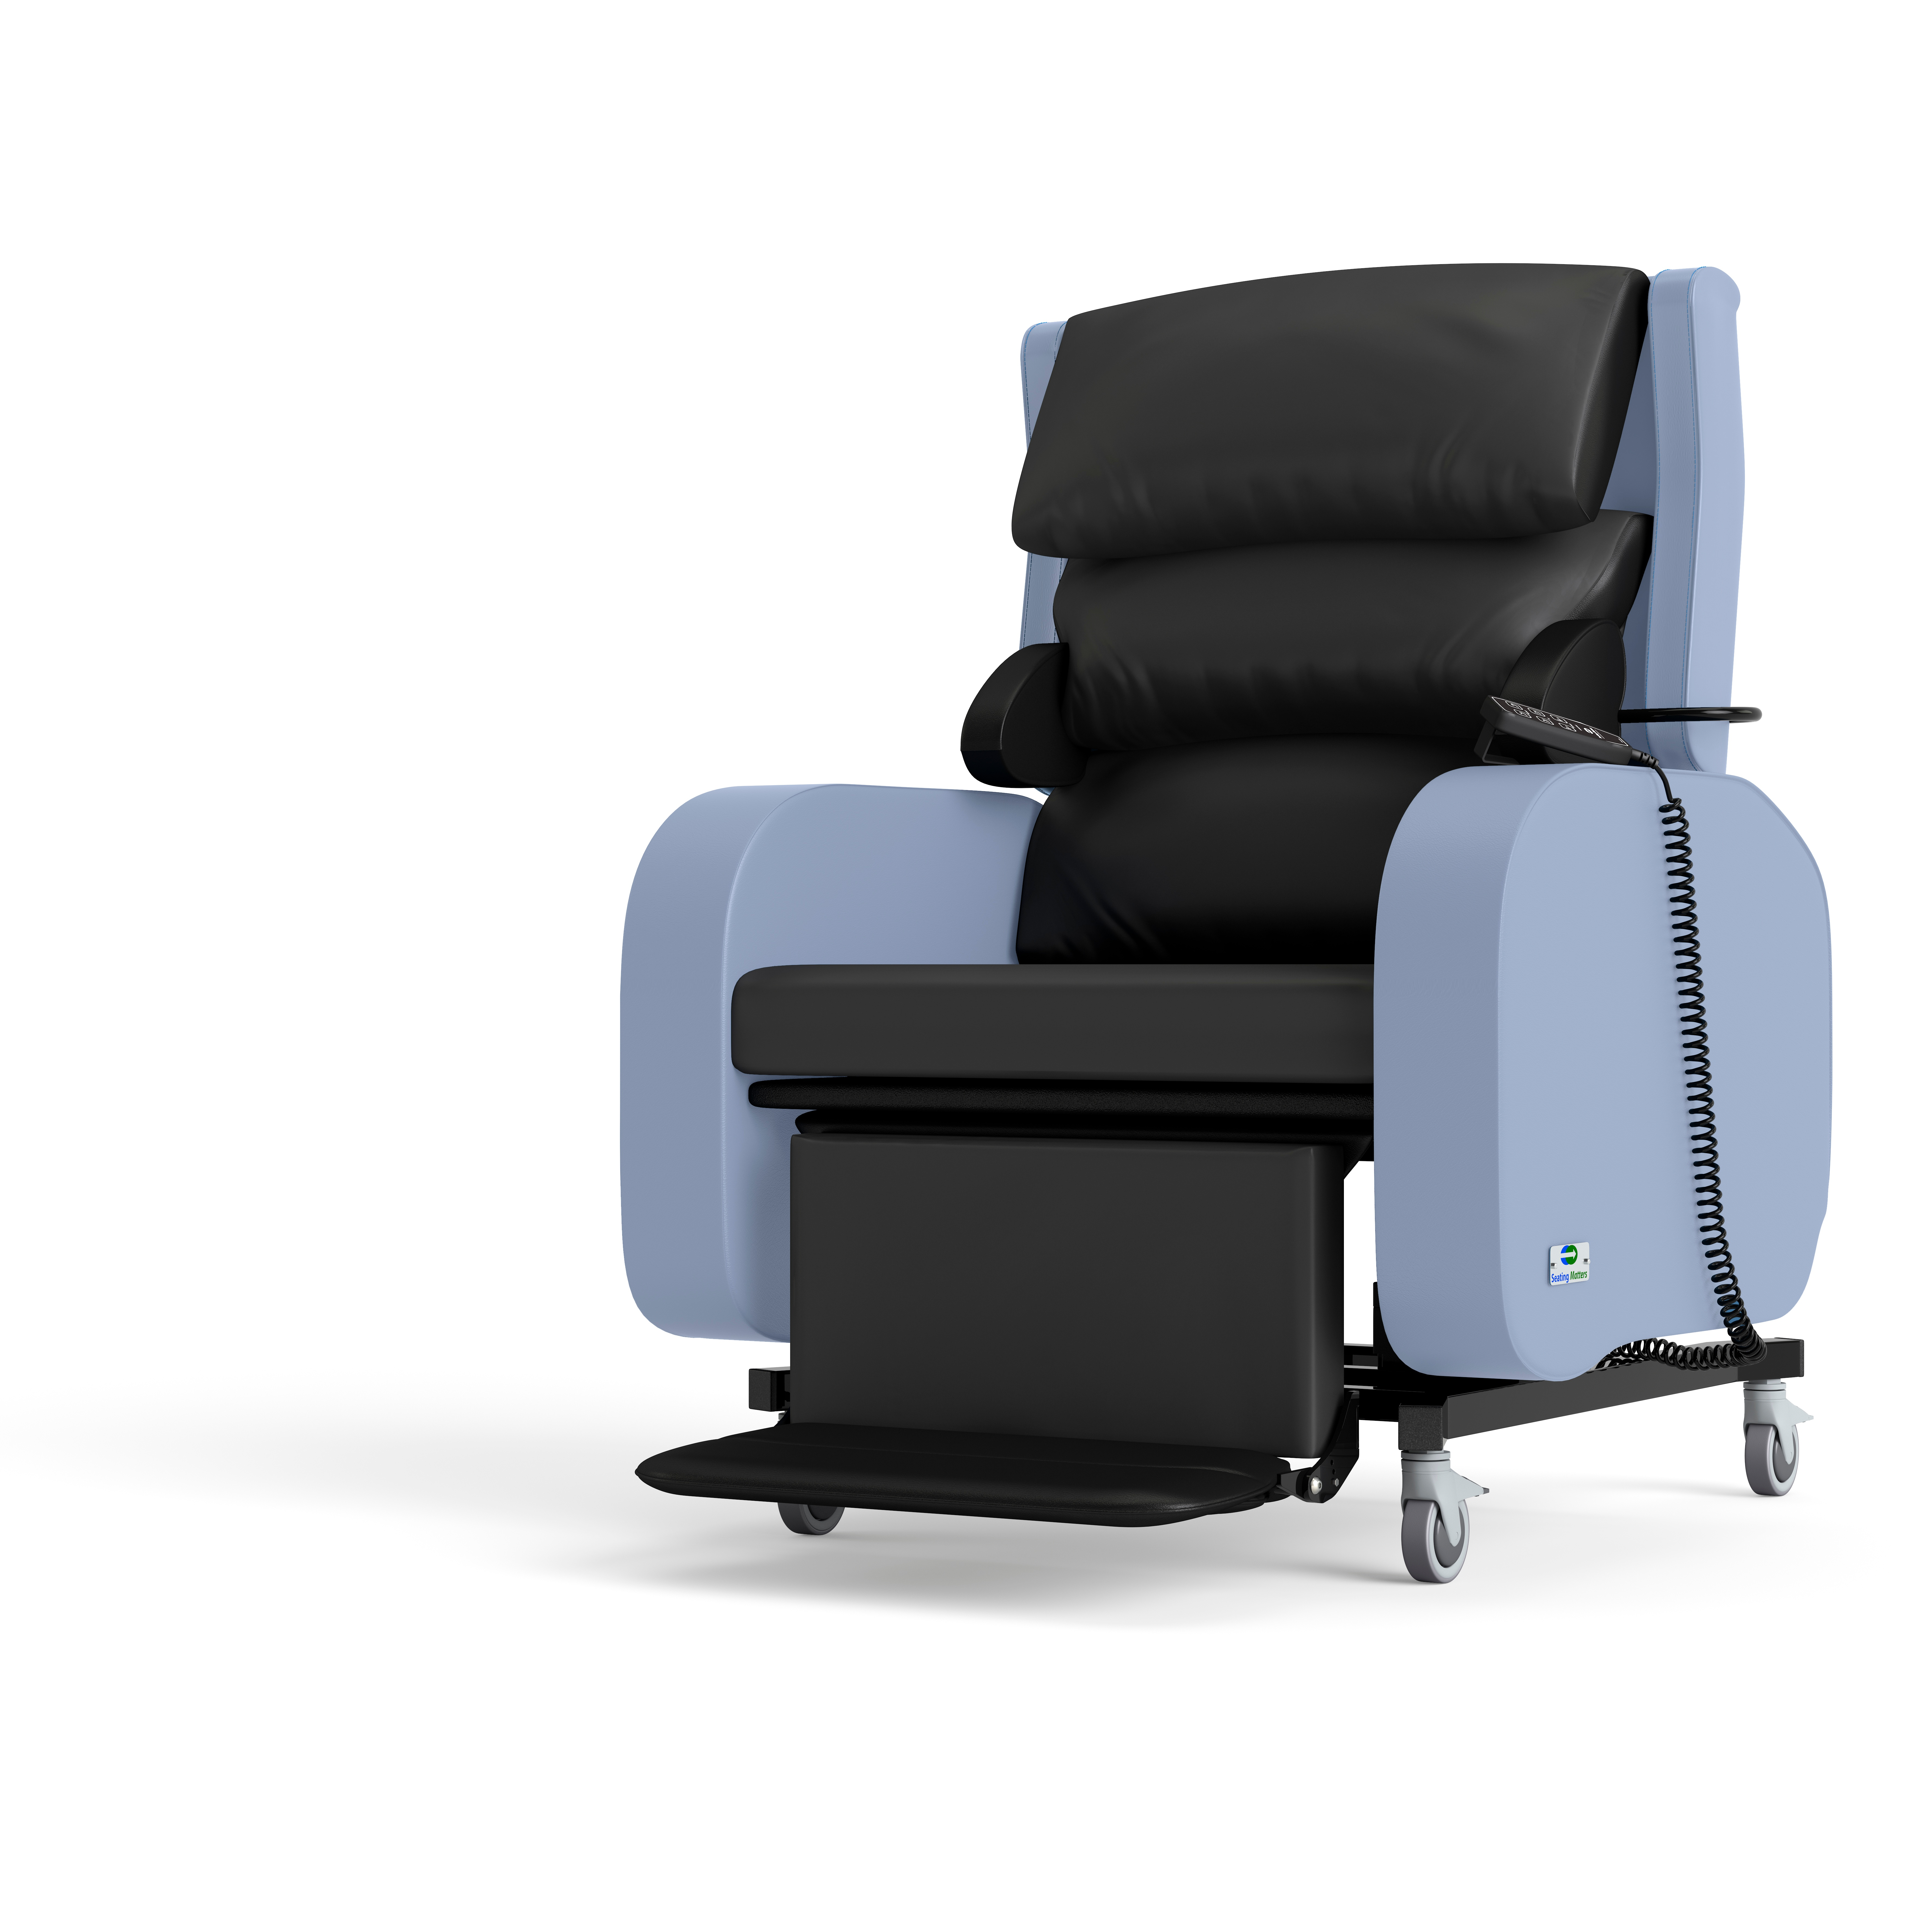 Seating_Matters_Bariatric_Sorrento.jpg